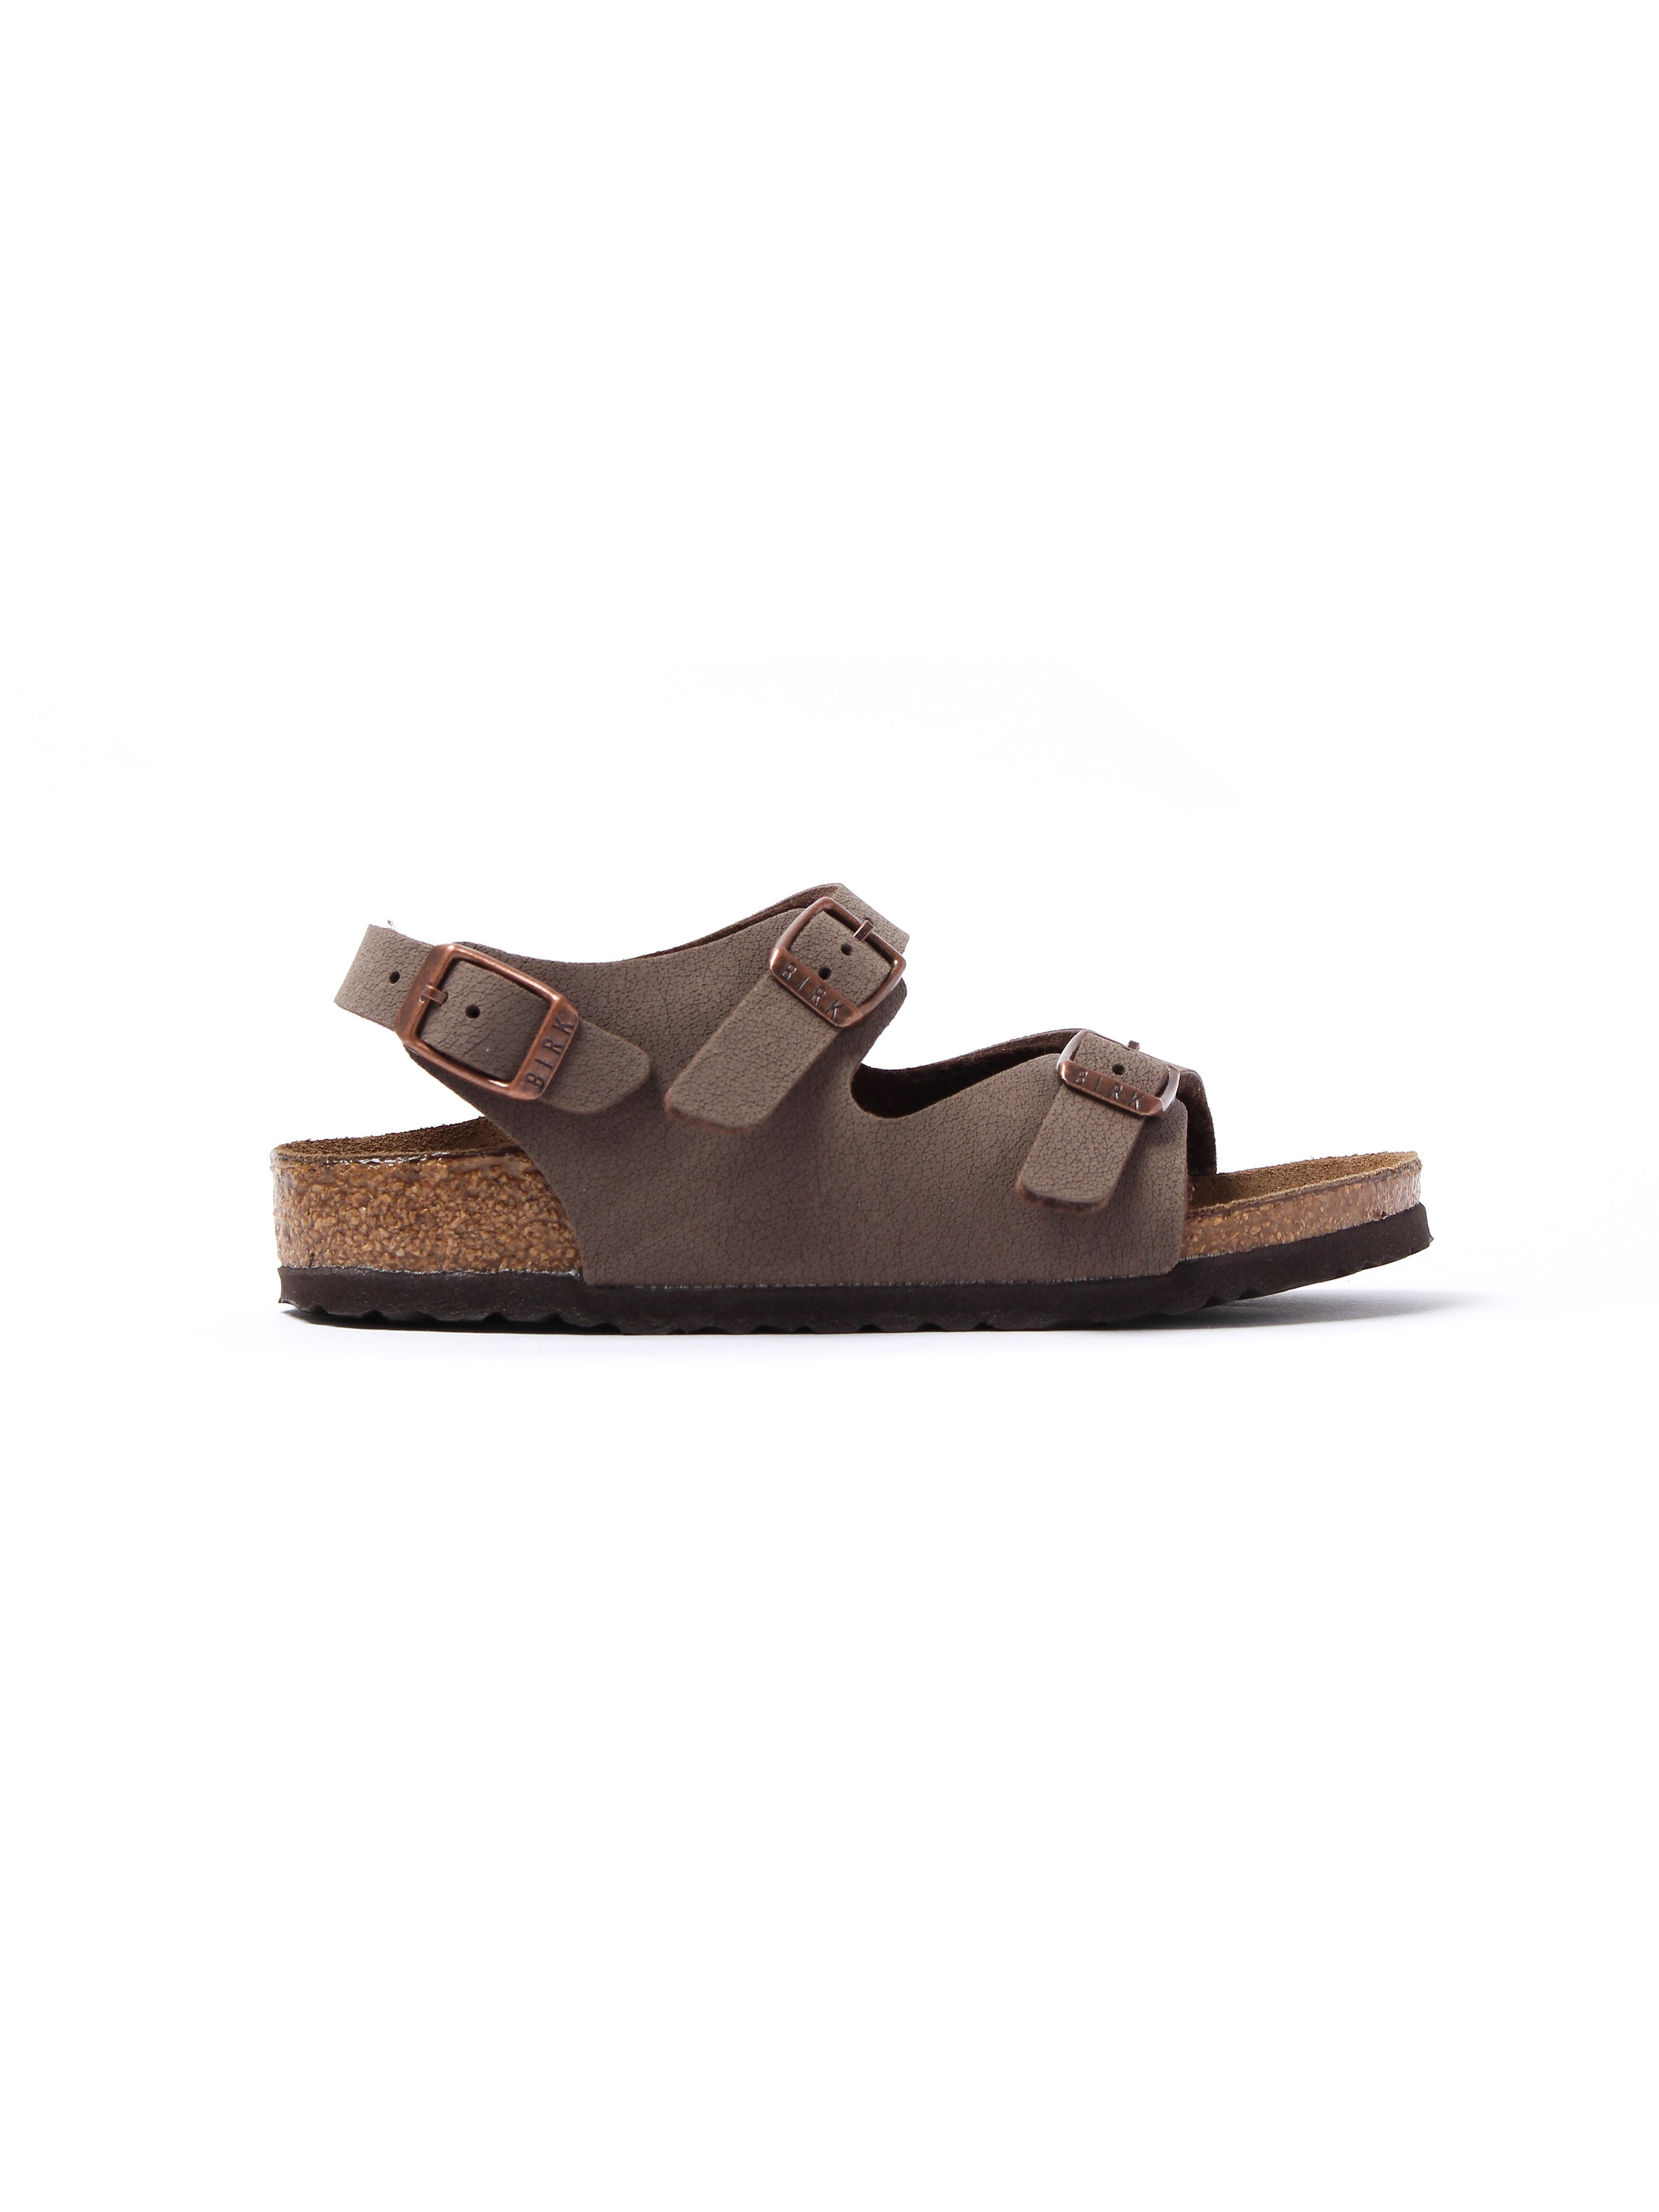 Birkenstock Infant Roma Kinder Narrow Fit Sandals - Mocca Nubuck